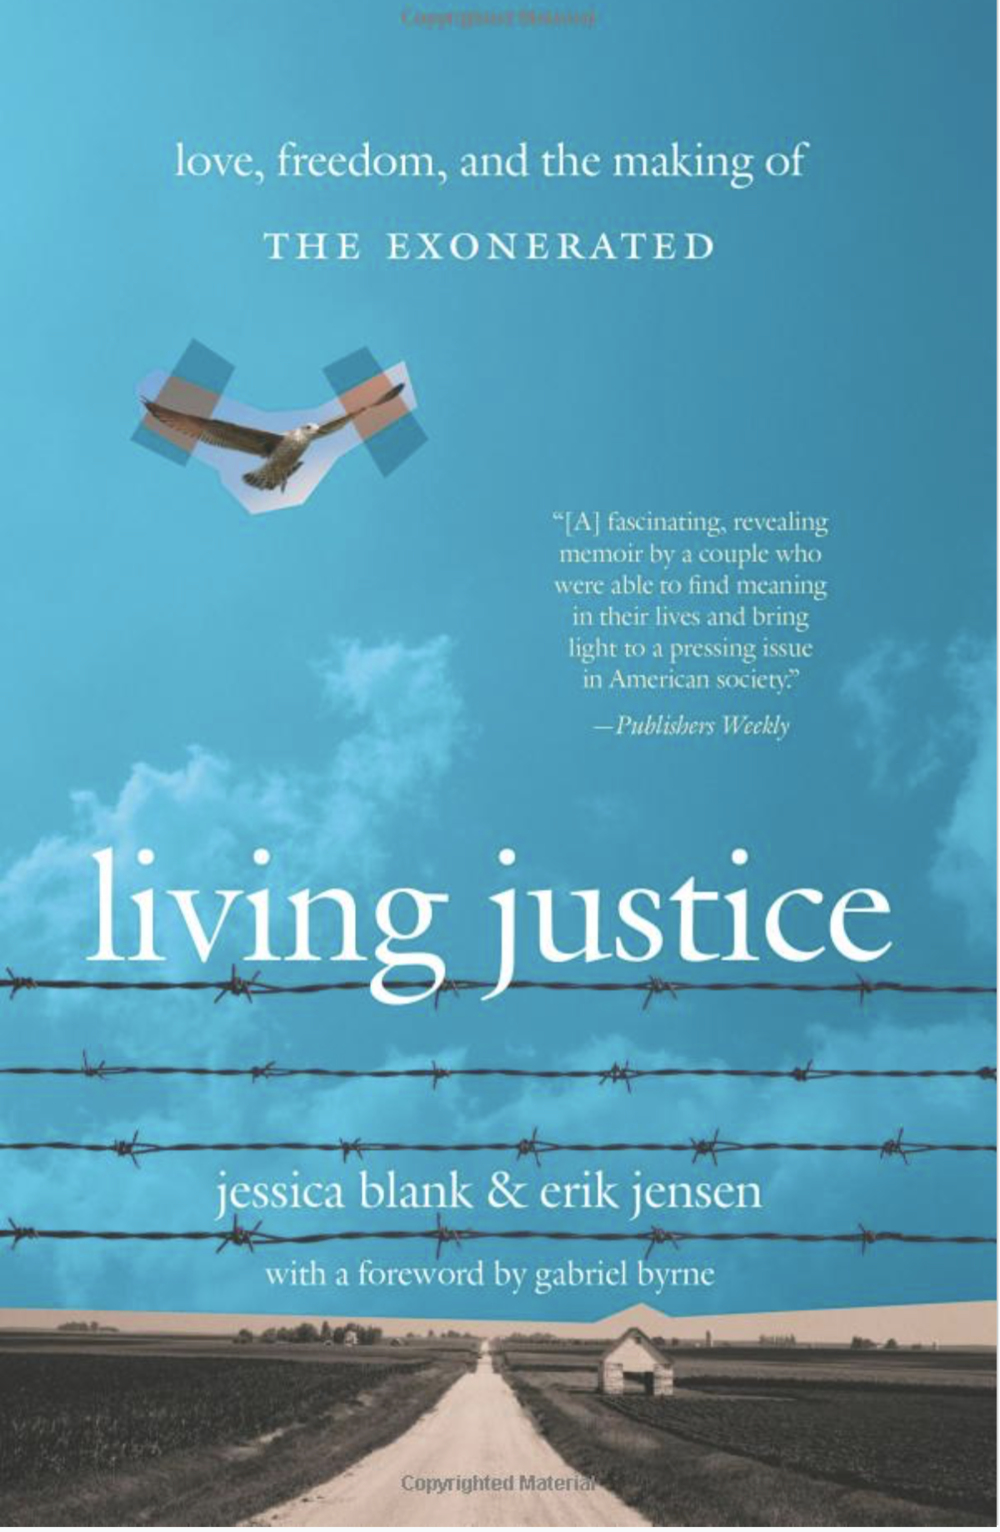 Book: Living Justice - By Jessica Blank & Erik Jensen